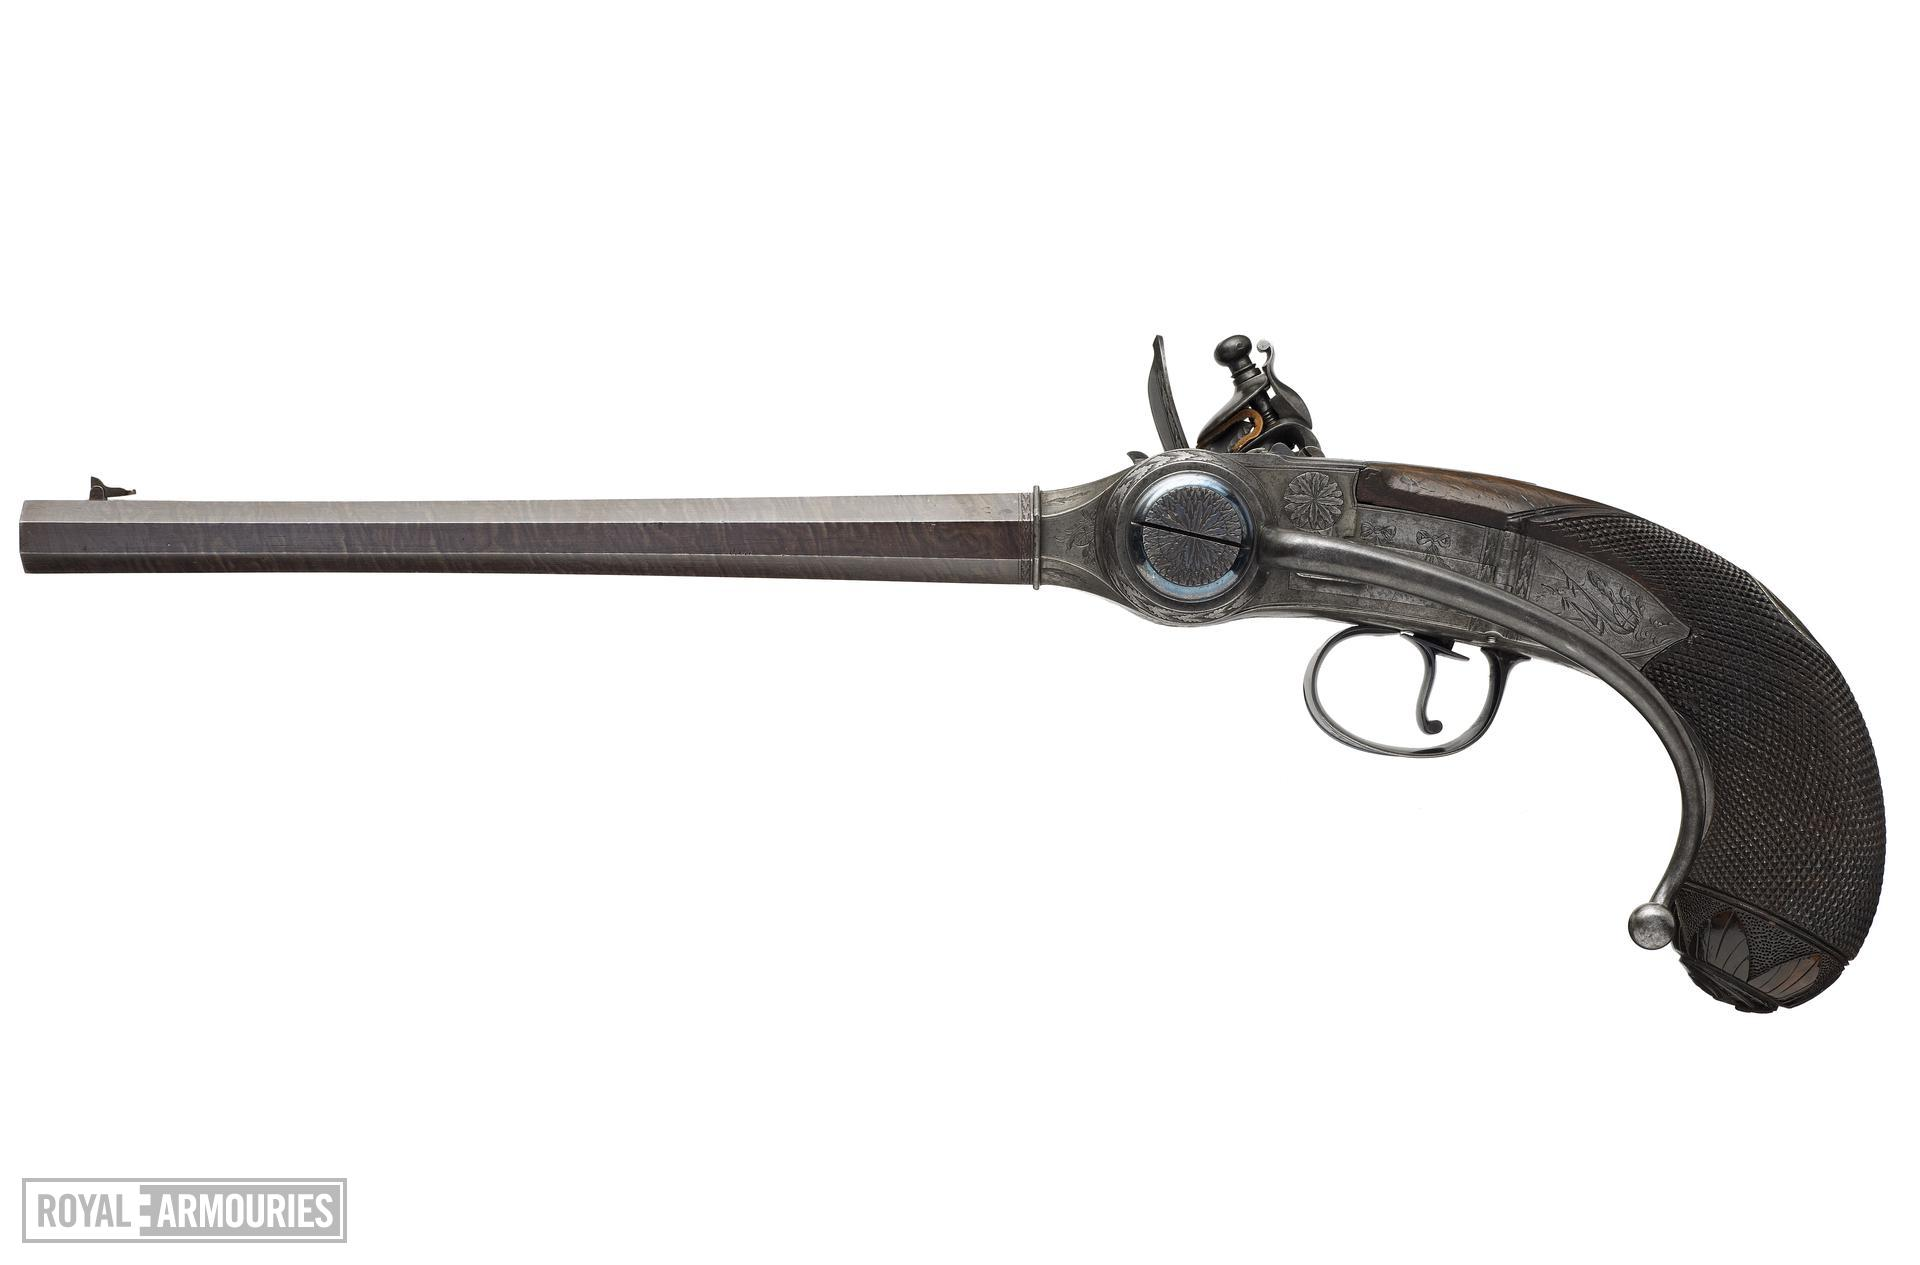 Flintlock breech-loading repeating pistol - Lorenzoni pistol